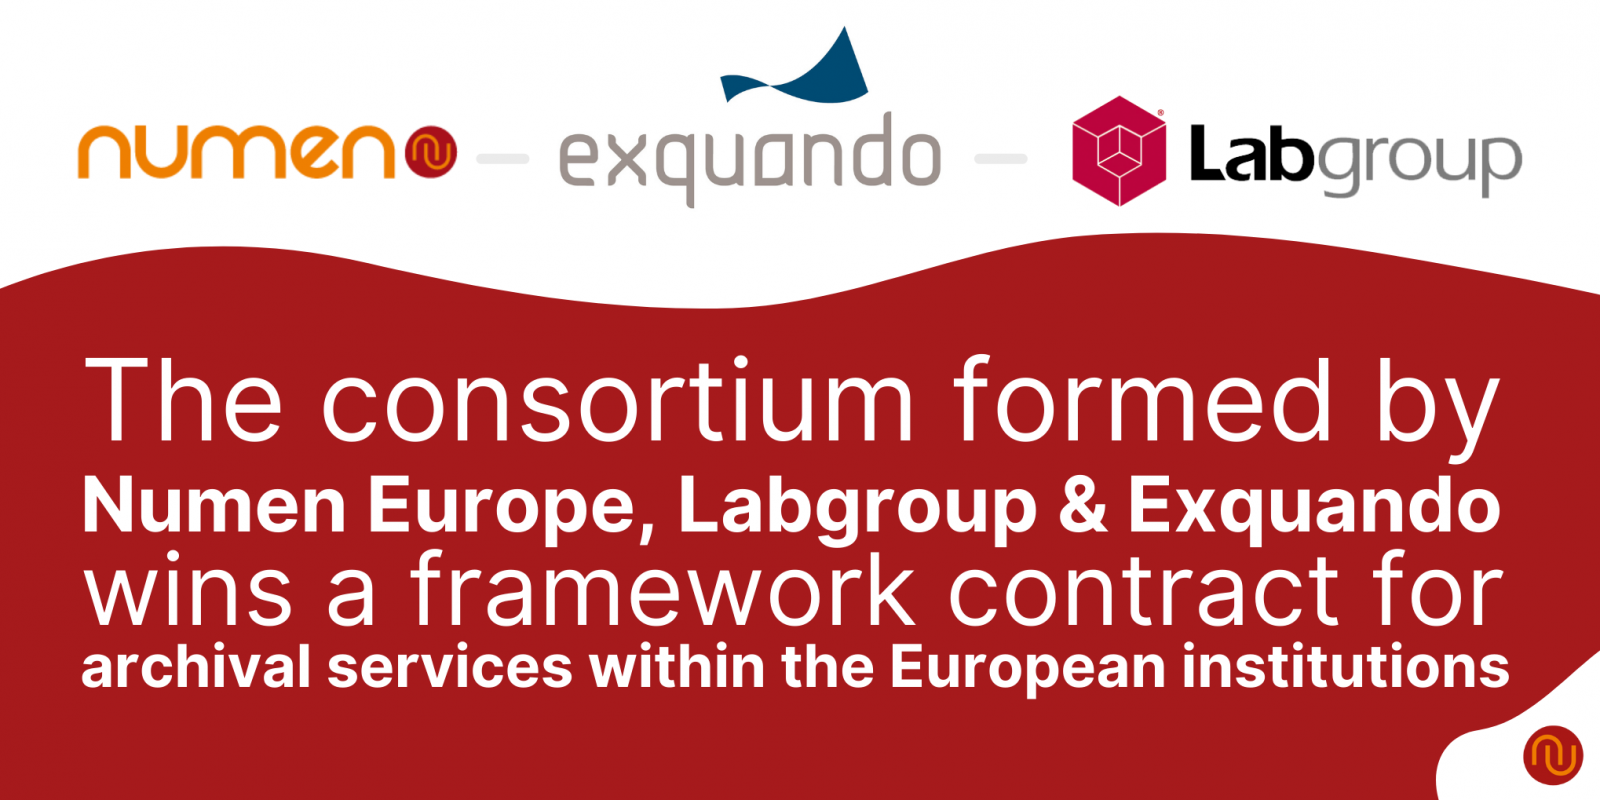 The consortium formed by Numen Europe, Labgroup & Exquando wins a framework contract  for archival services within the European institutions